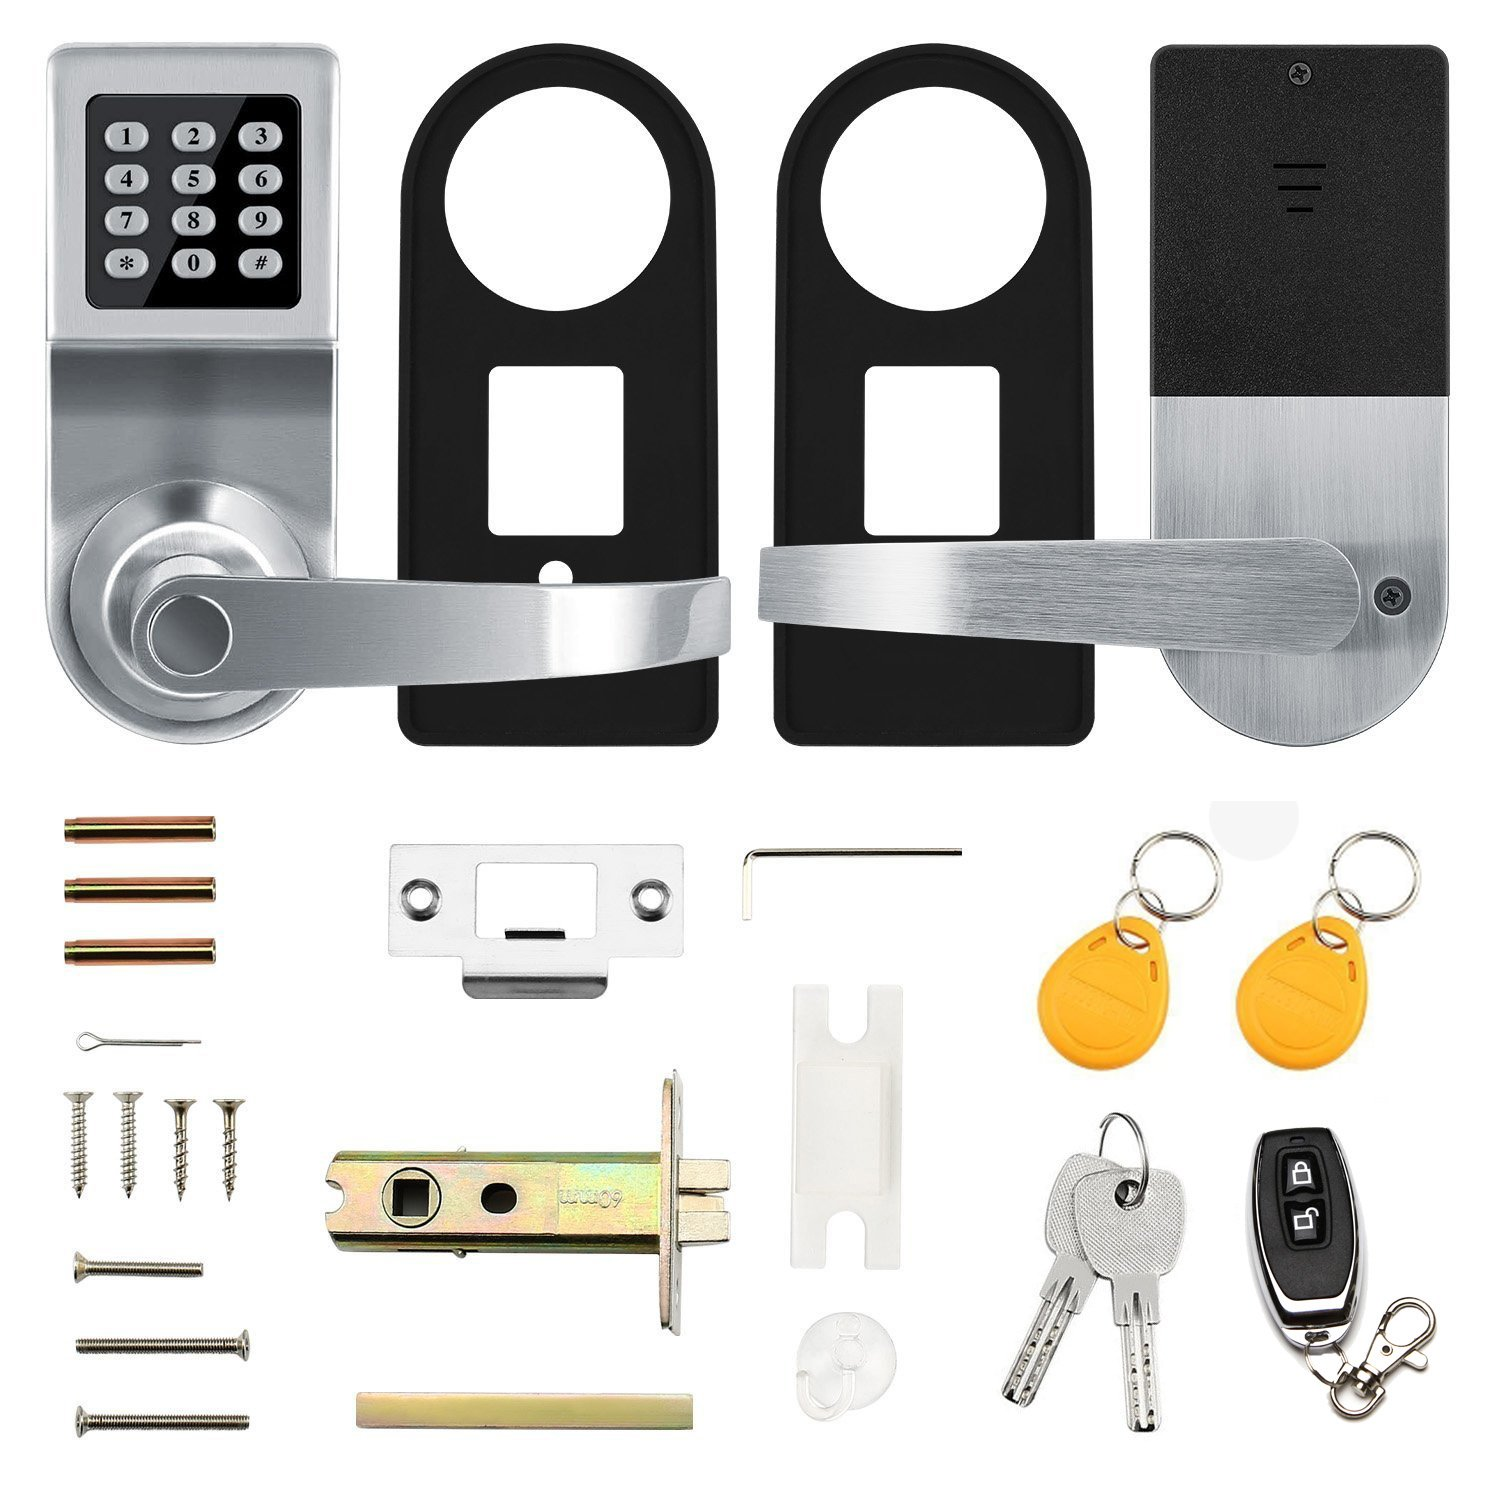 Keyless Electronic Digital Smart Door Lock, Keypad – Smartcode Security, Grant & Control Access for Home, Office (Silver) by Colosus (Image #7)